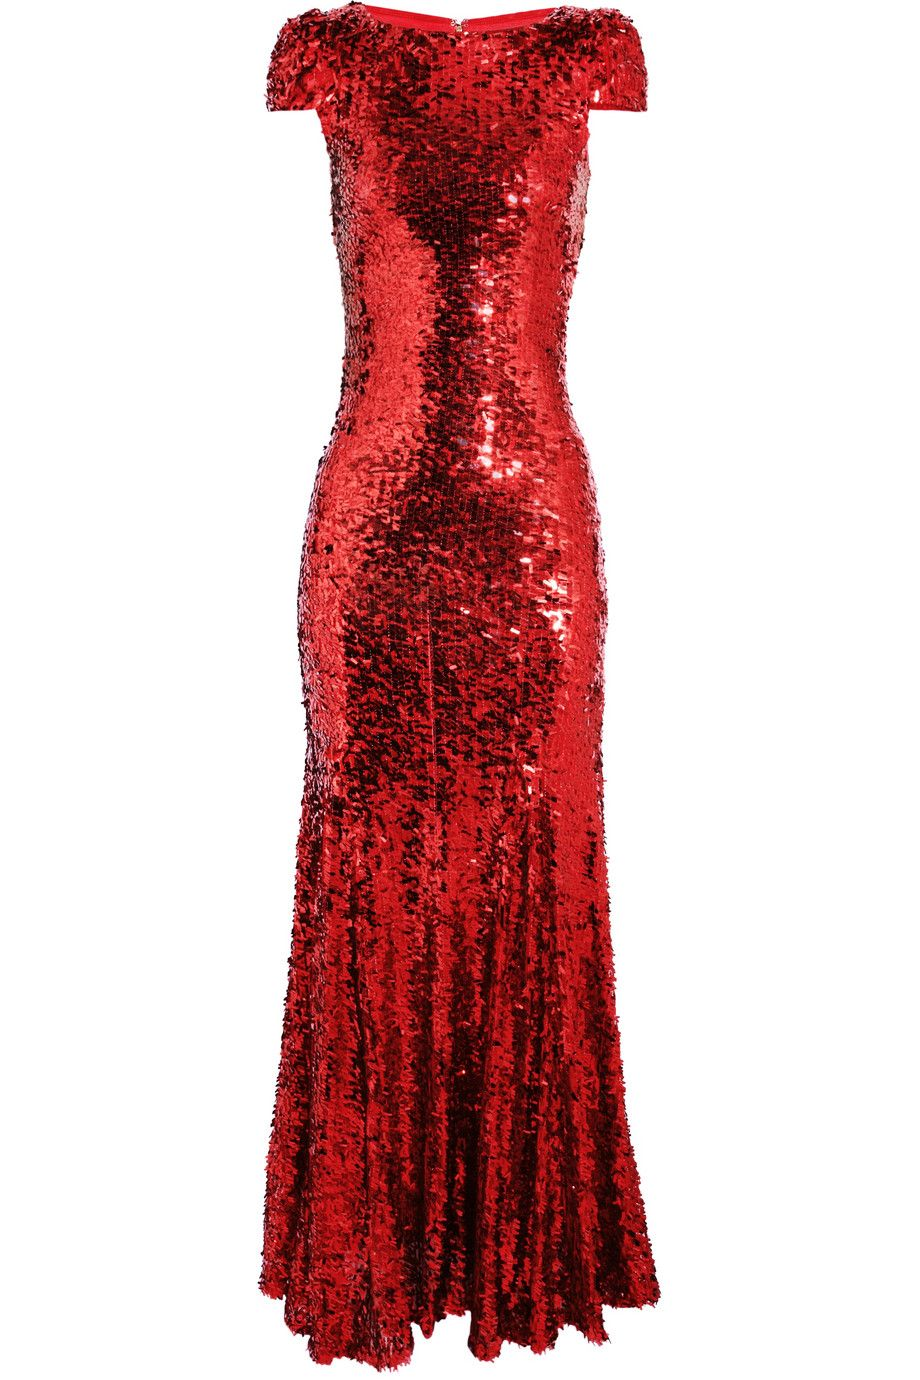 Rachel gilbert simone sequined gown frocks sparkles red armario